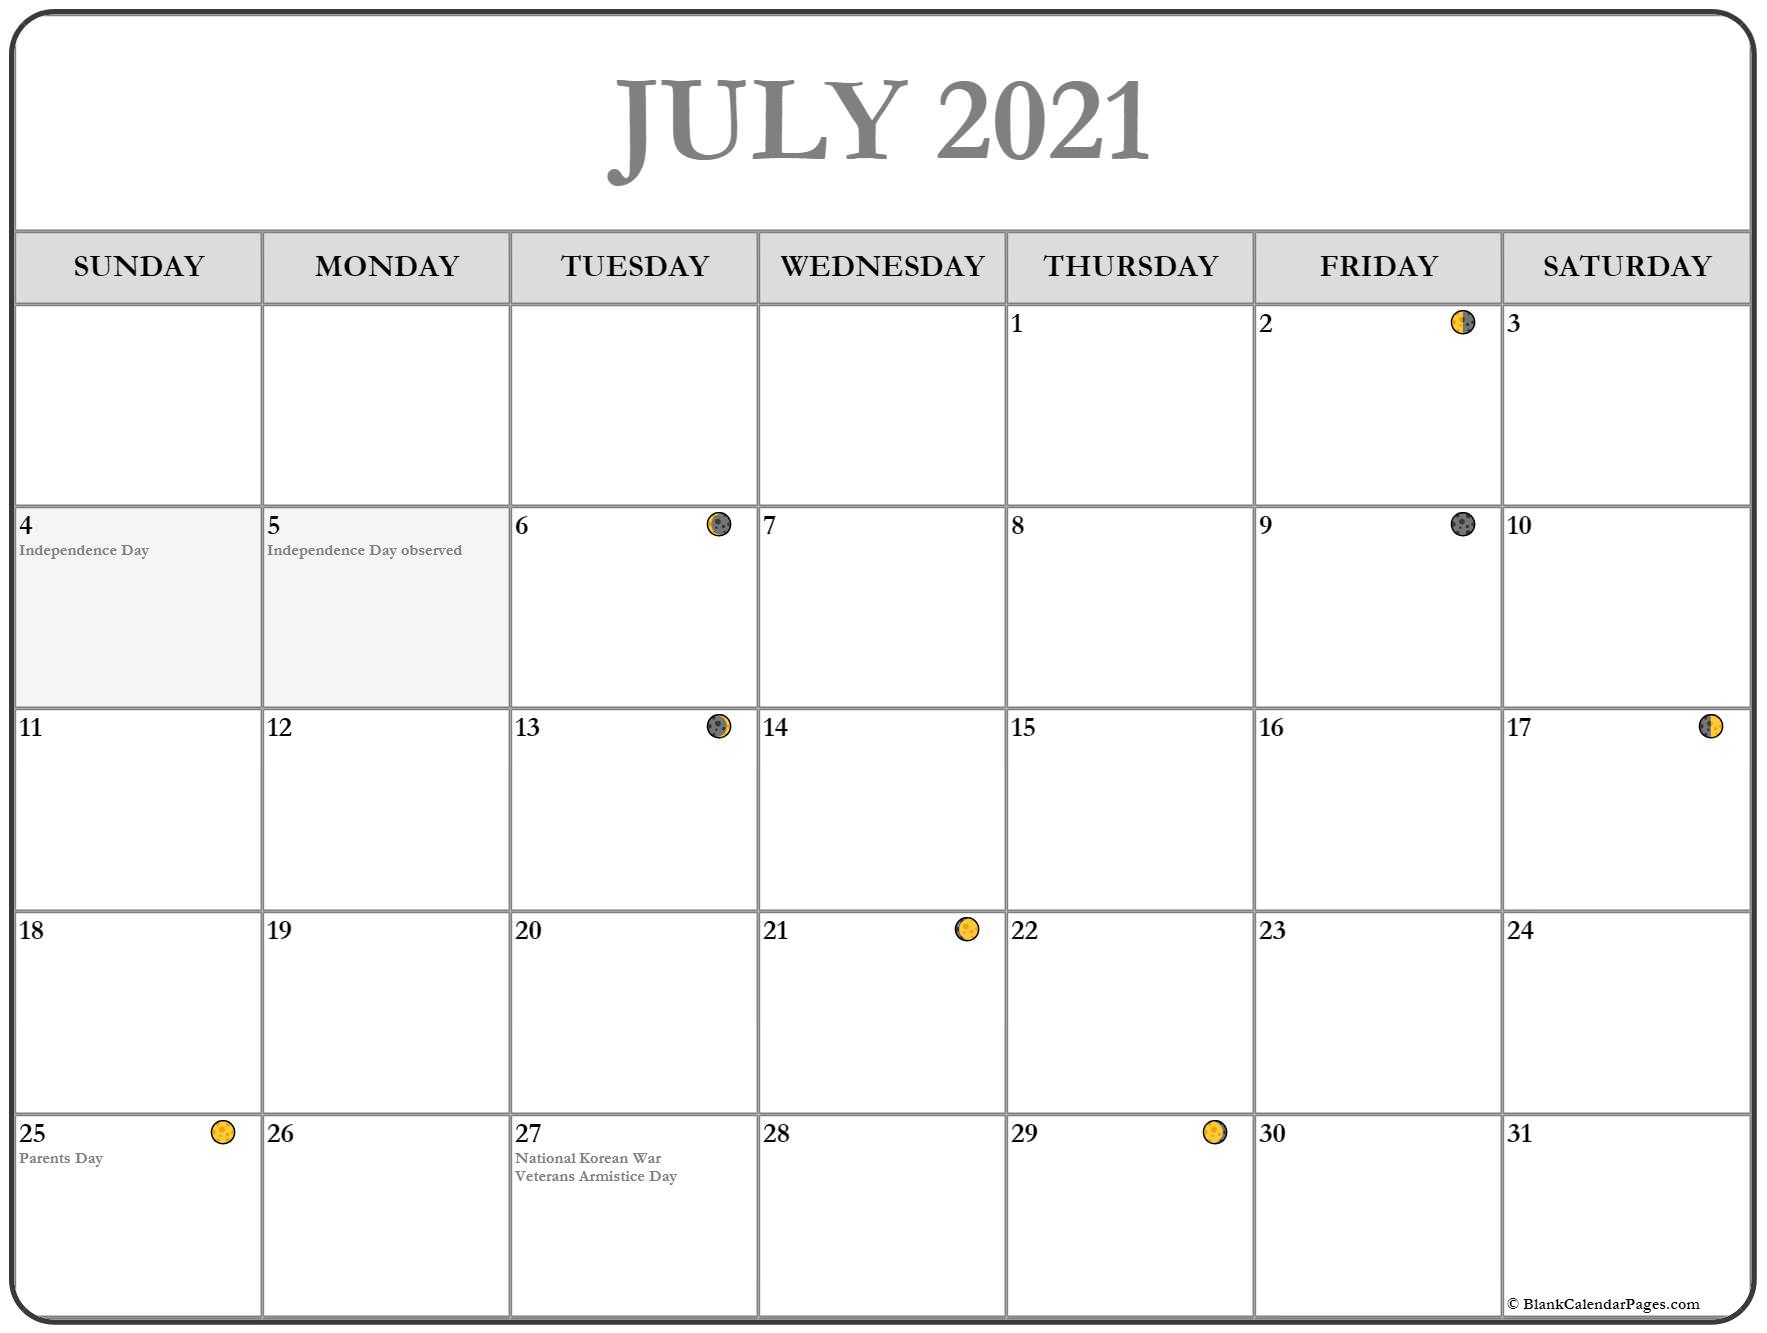 July 2021 Lunar Calendar | Moon Phase Calendar With 2021 Deer Hunting Lunar Calendar